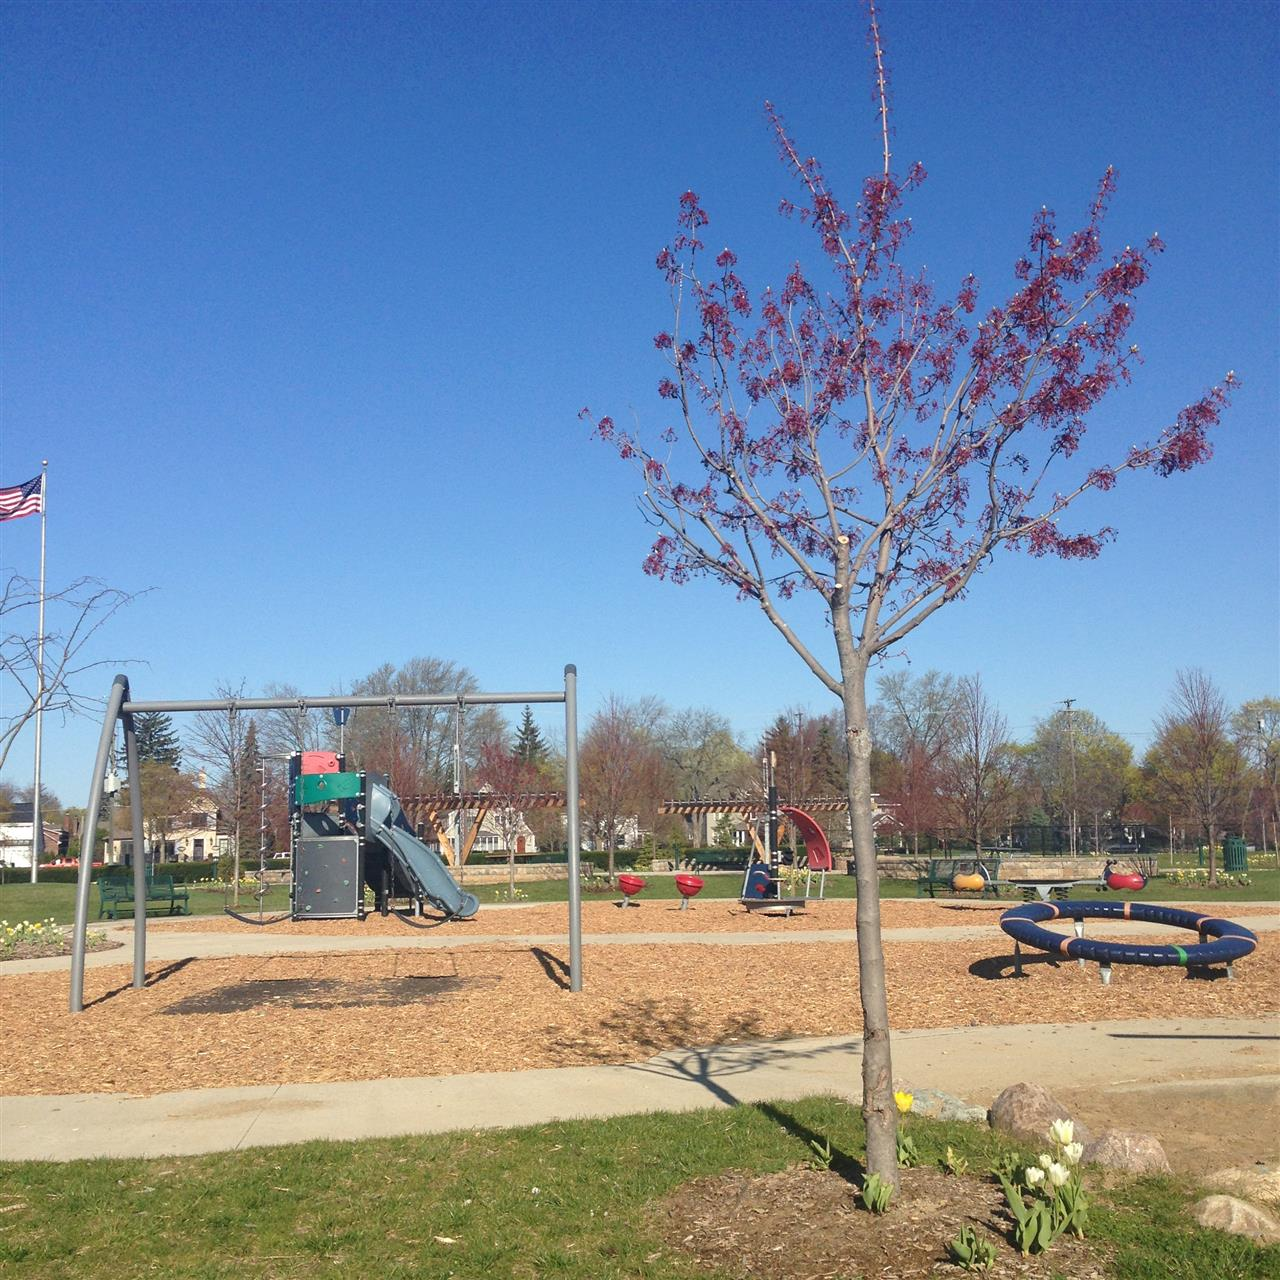 Playground at Barnum Park ~ Birmingham, Michigan #LeadingRElocal #Birmingham #Michigan